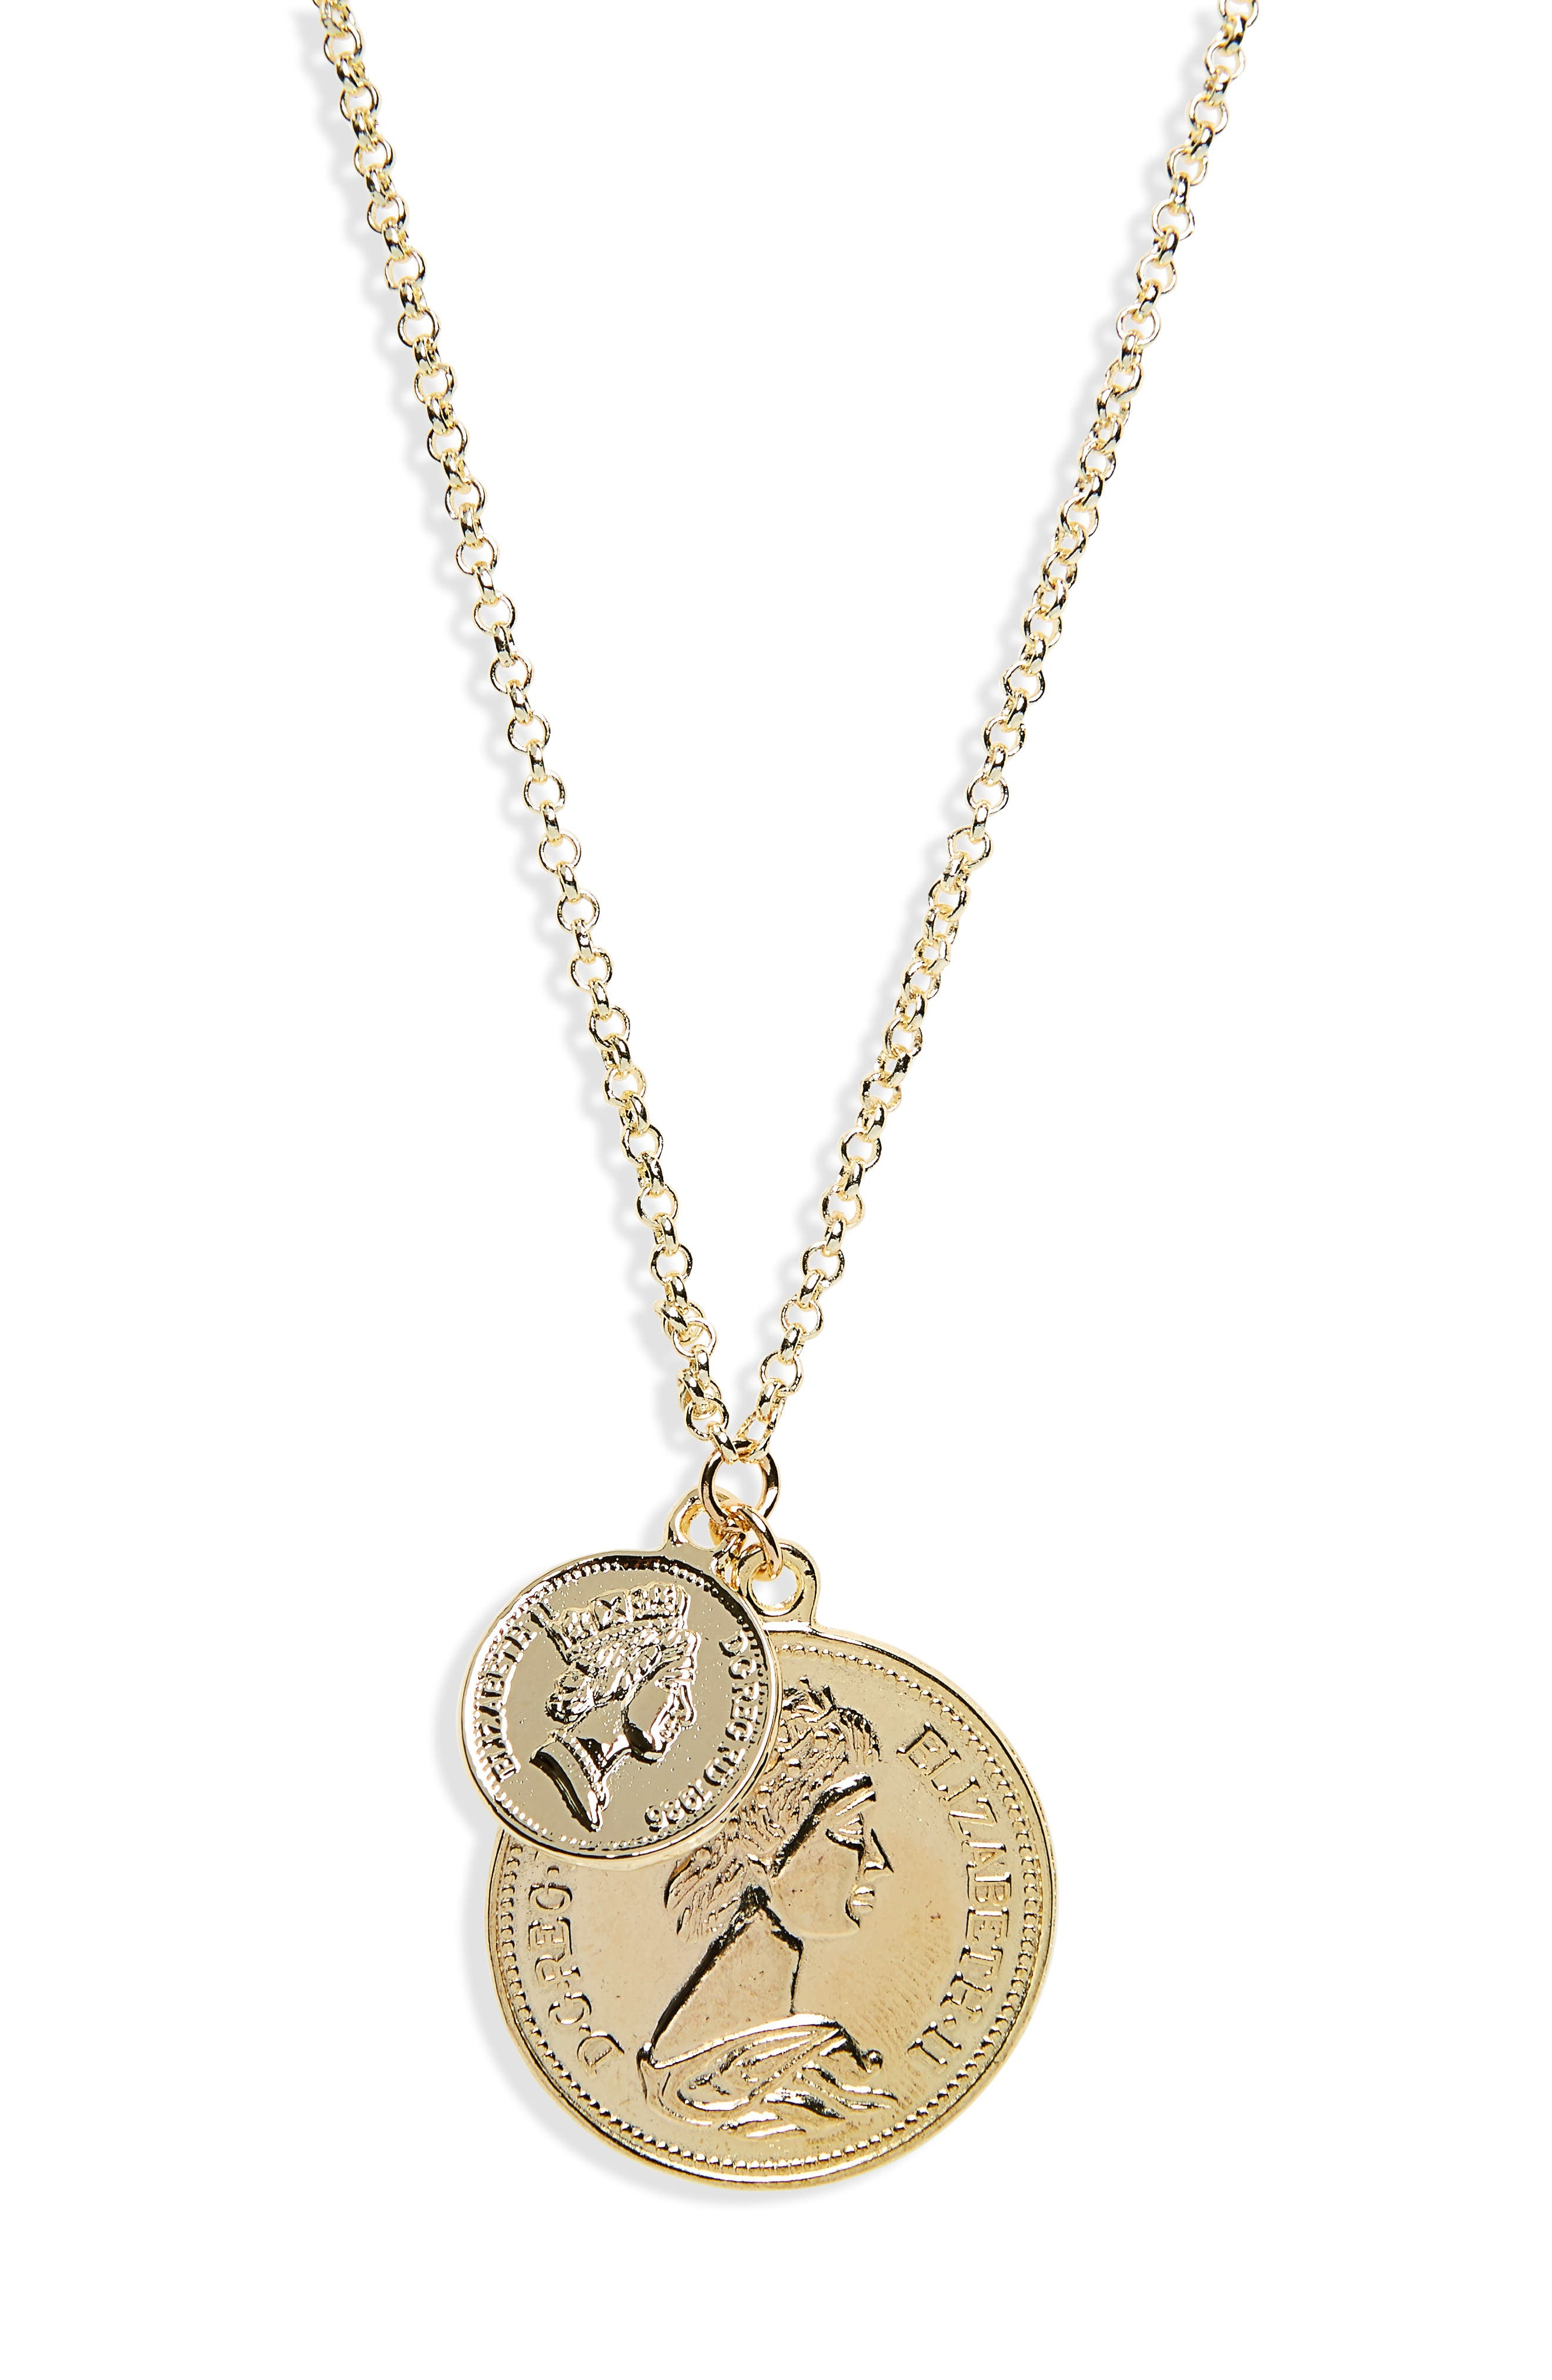 Double Coin Pendant Necklace,                         Main,                         color, YELLOW GOLD